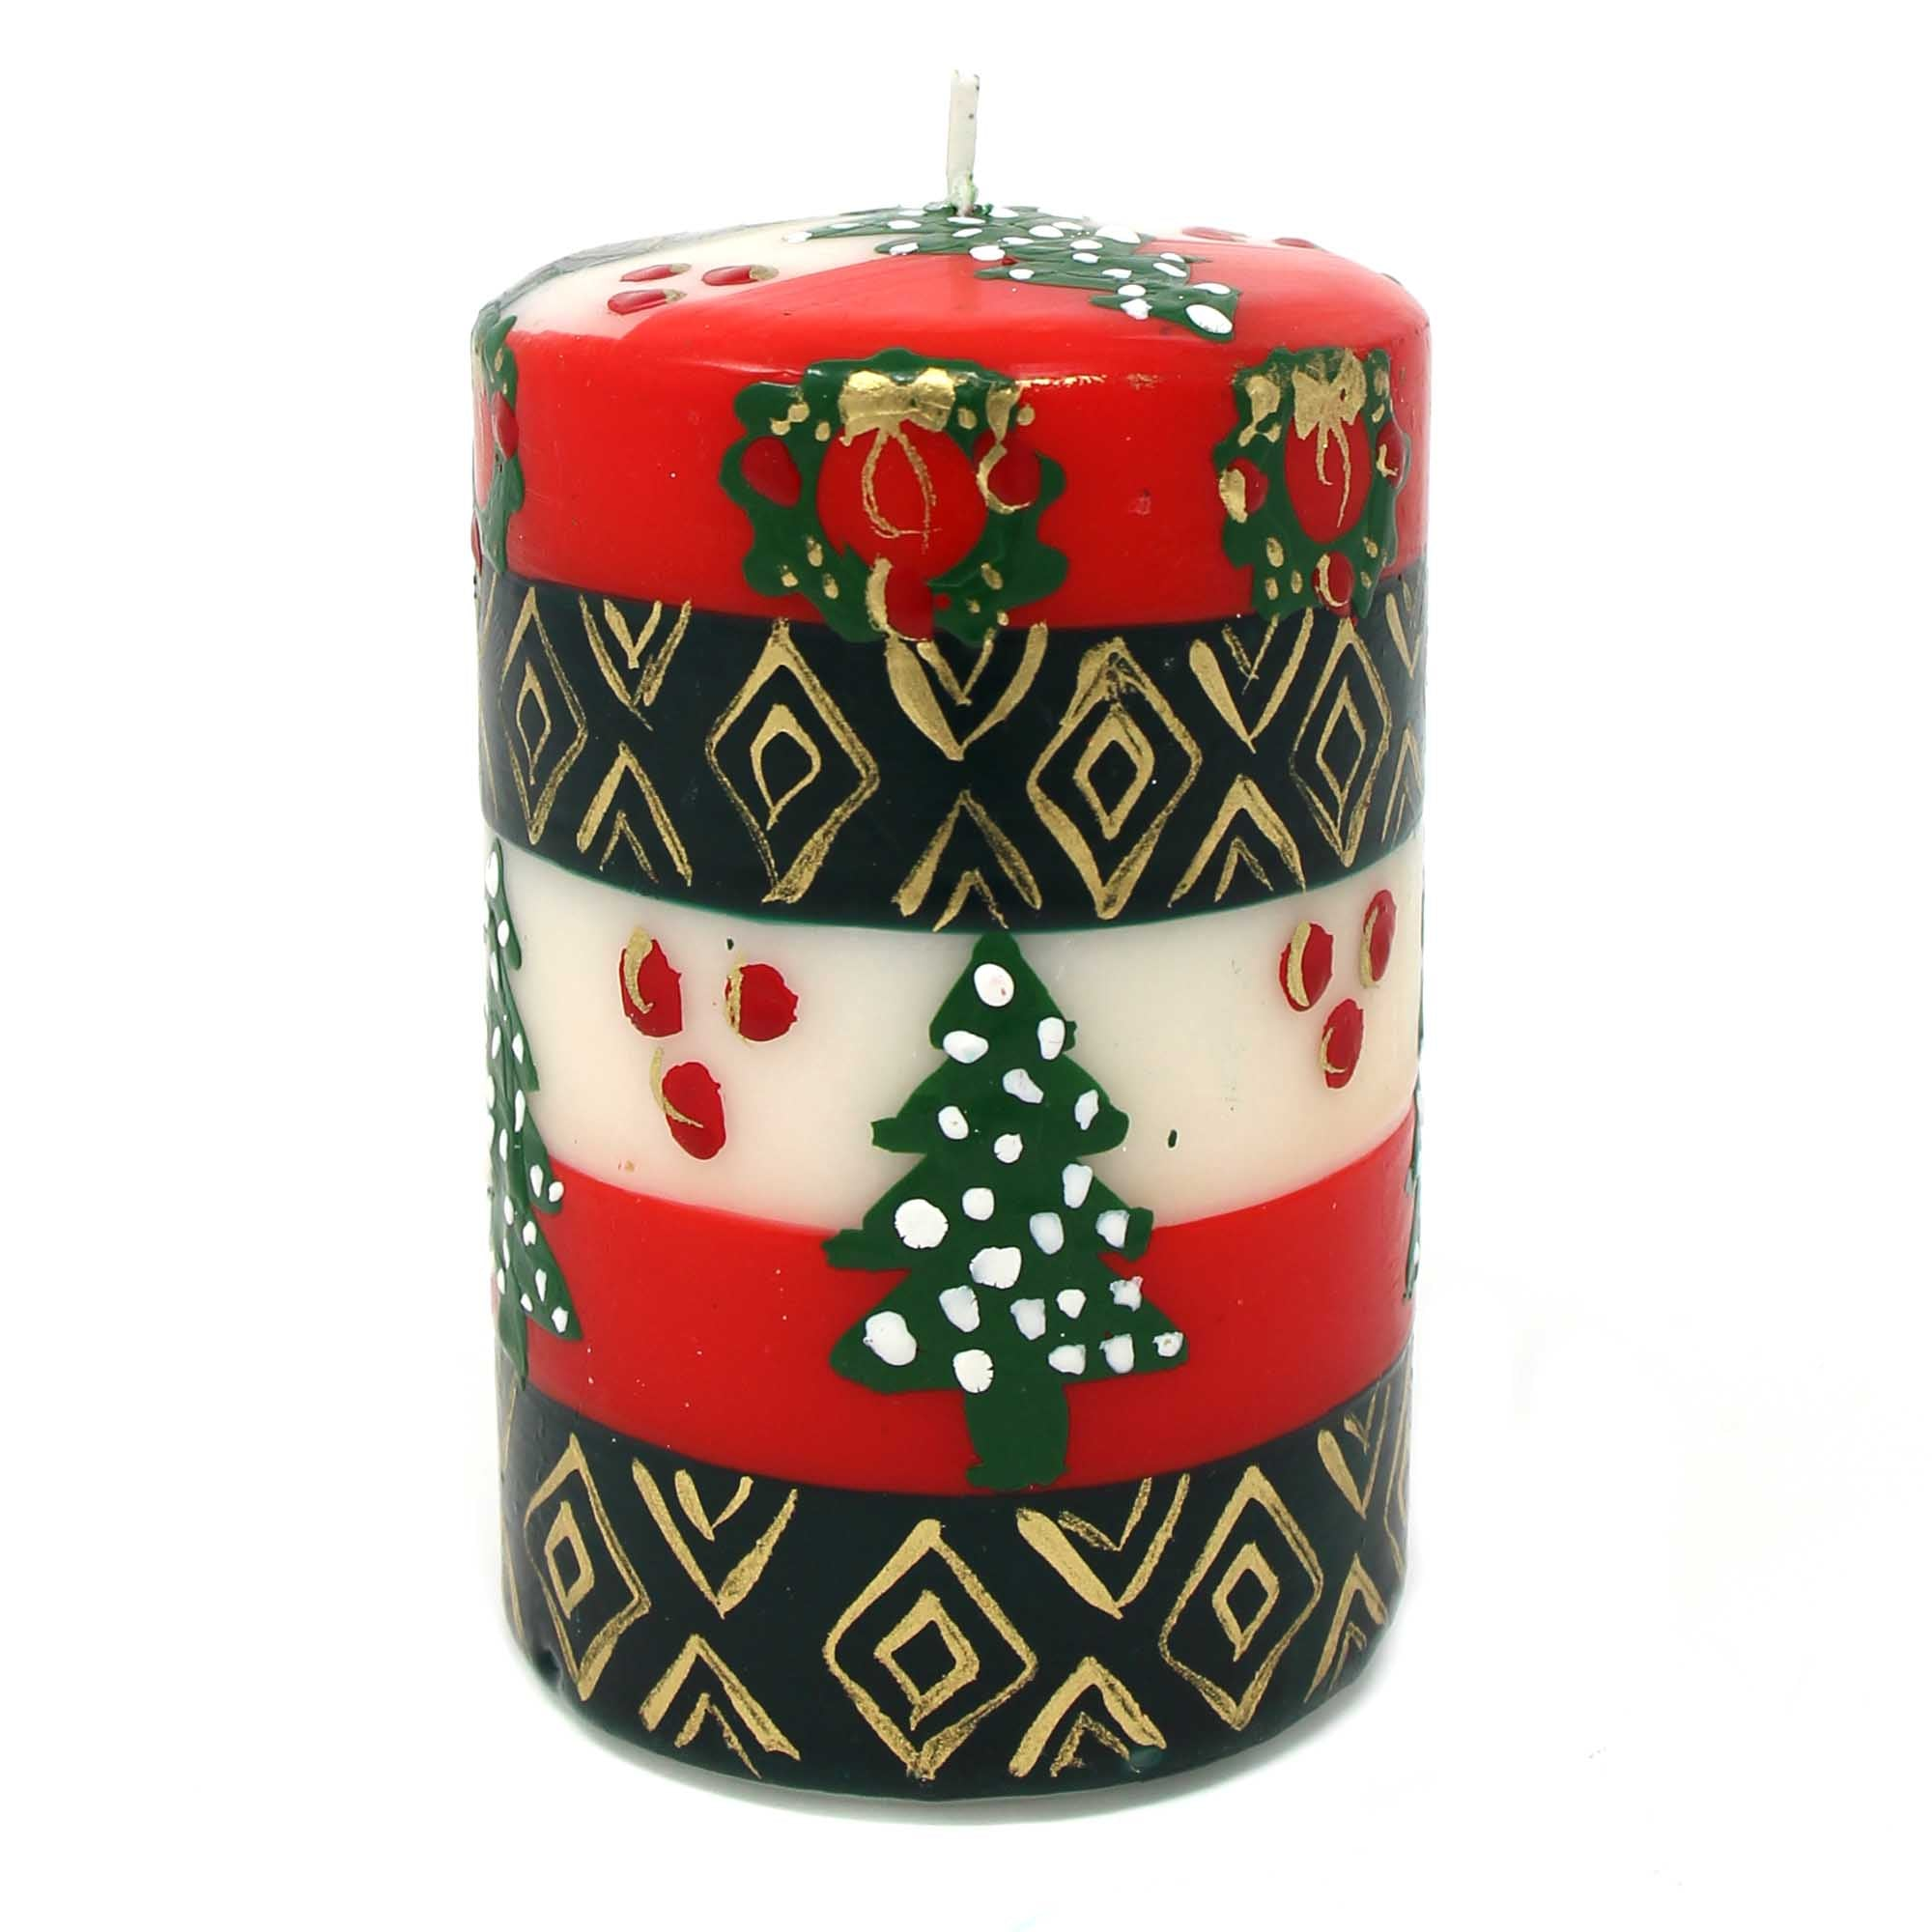 Hand Painted Candle - Single in Box - Ukhisimui Design